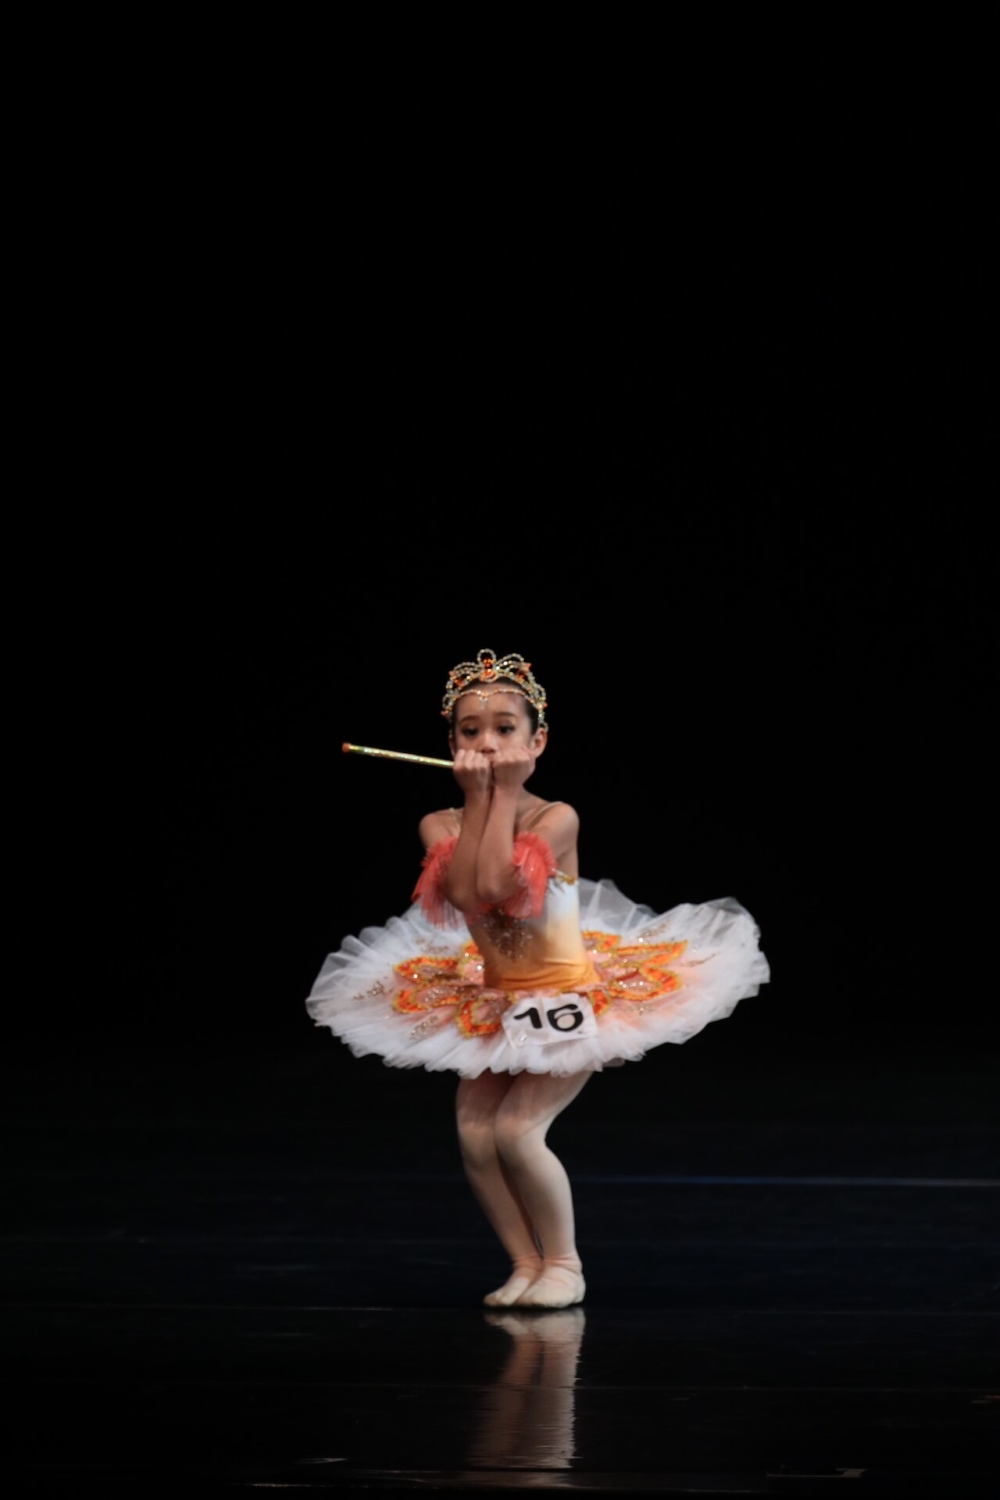 Dance Prix Indonesia 2019 – Young Talent 3rd Place, Tiffany Emmanuela Tanugraha (Marlupi Ballet Dance School Kelapa Gading)